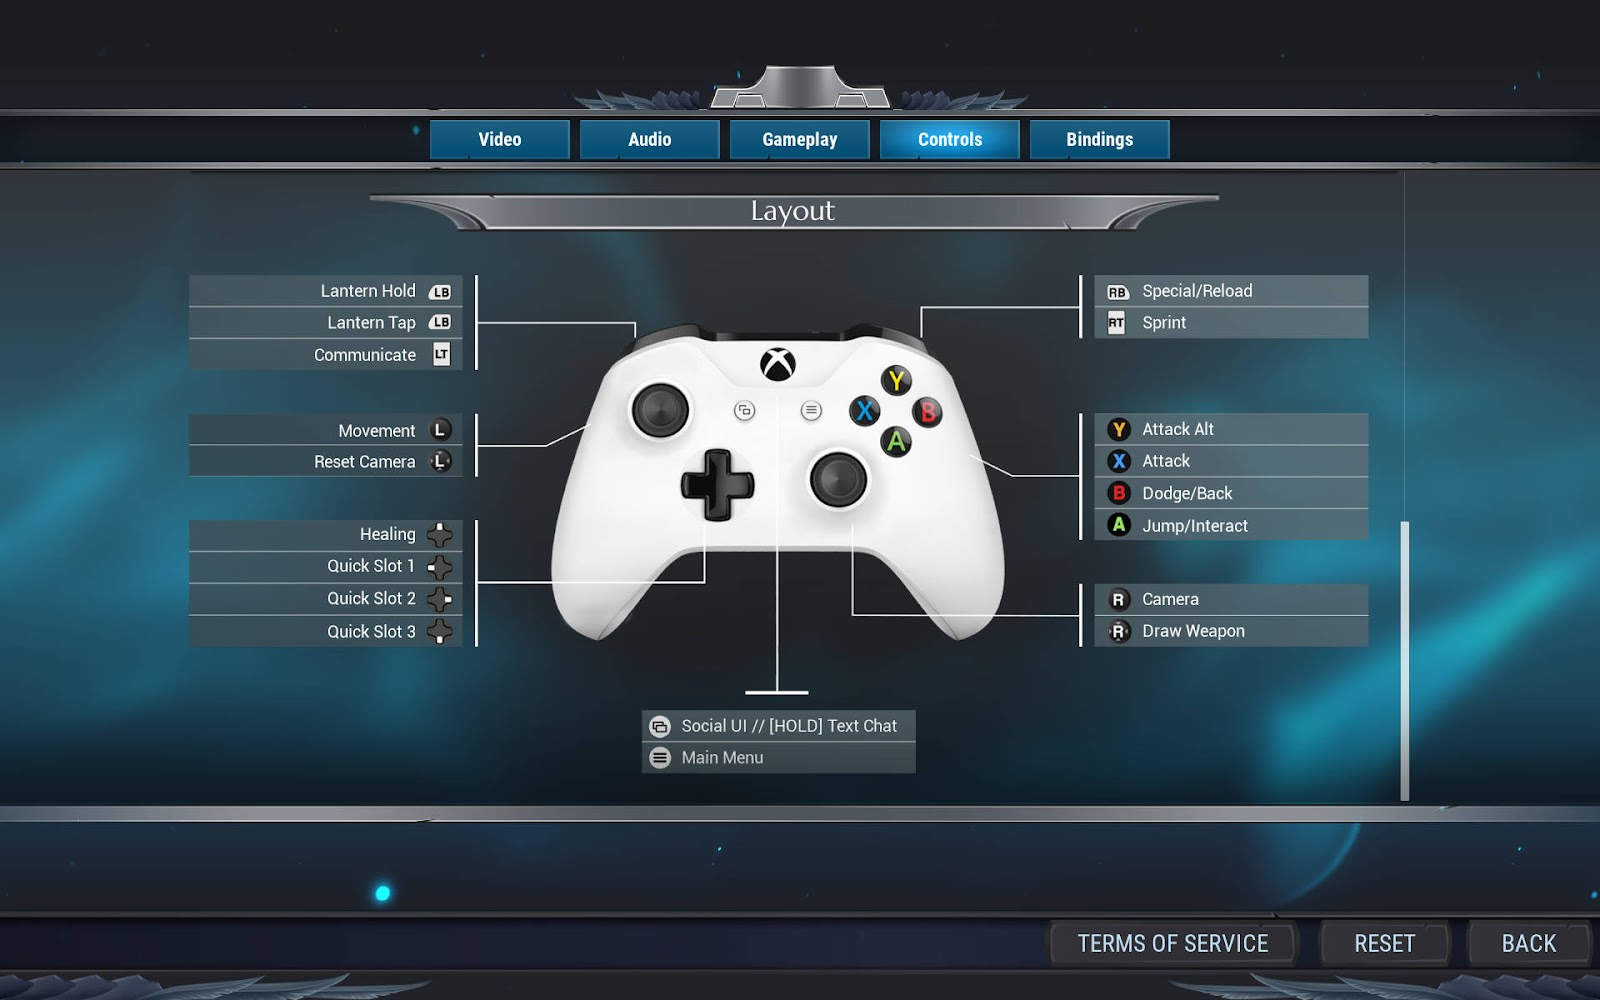 A gamepad image showing the layout of the controls.